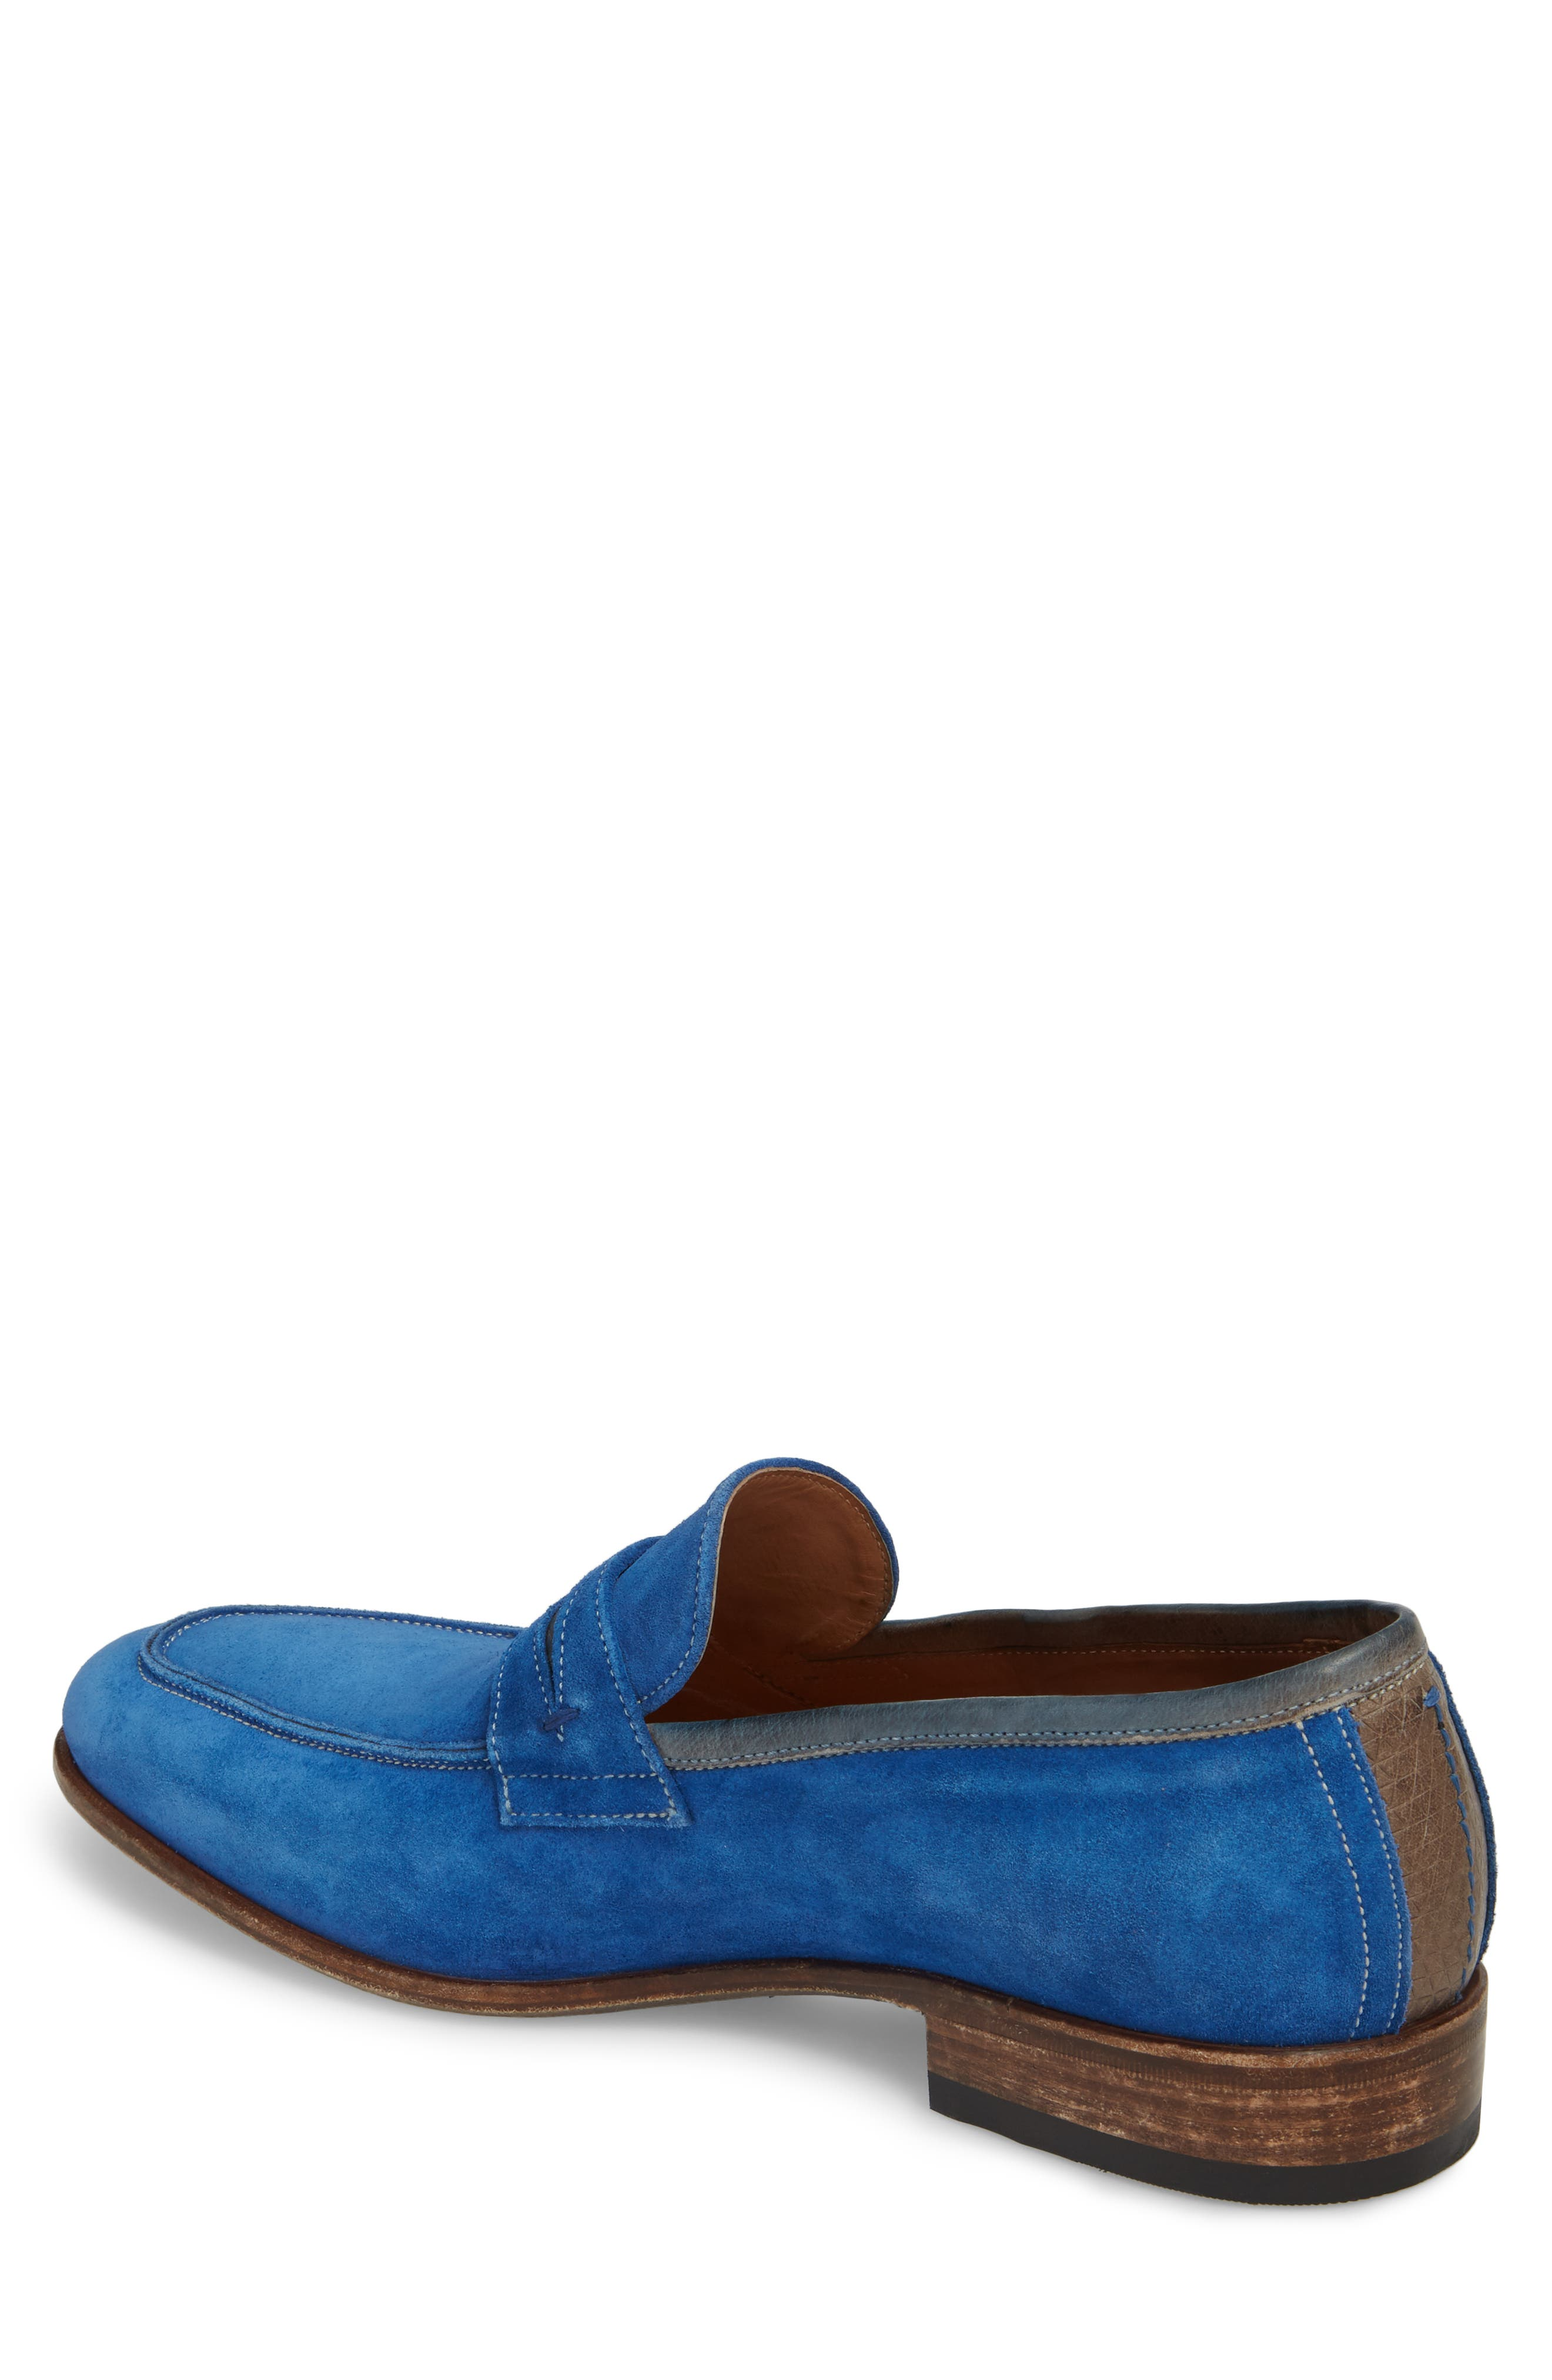 Lex Apron Toe Penny Loafer,                             Alternate thumbnail 4, color,